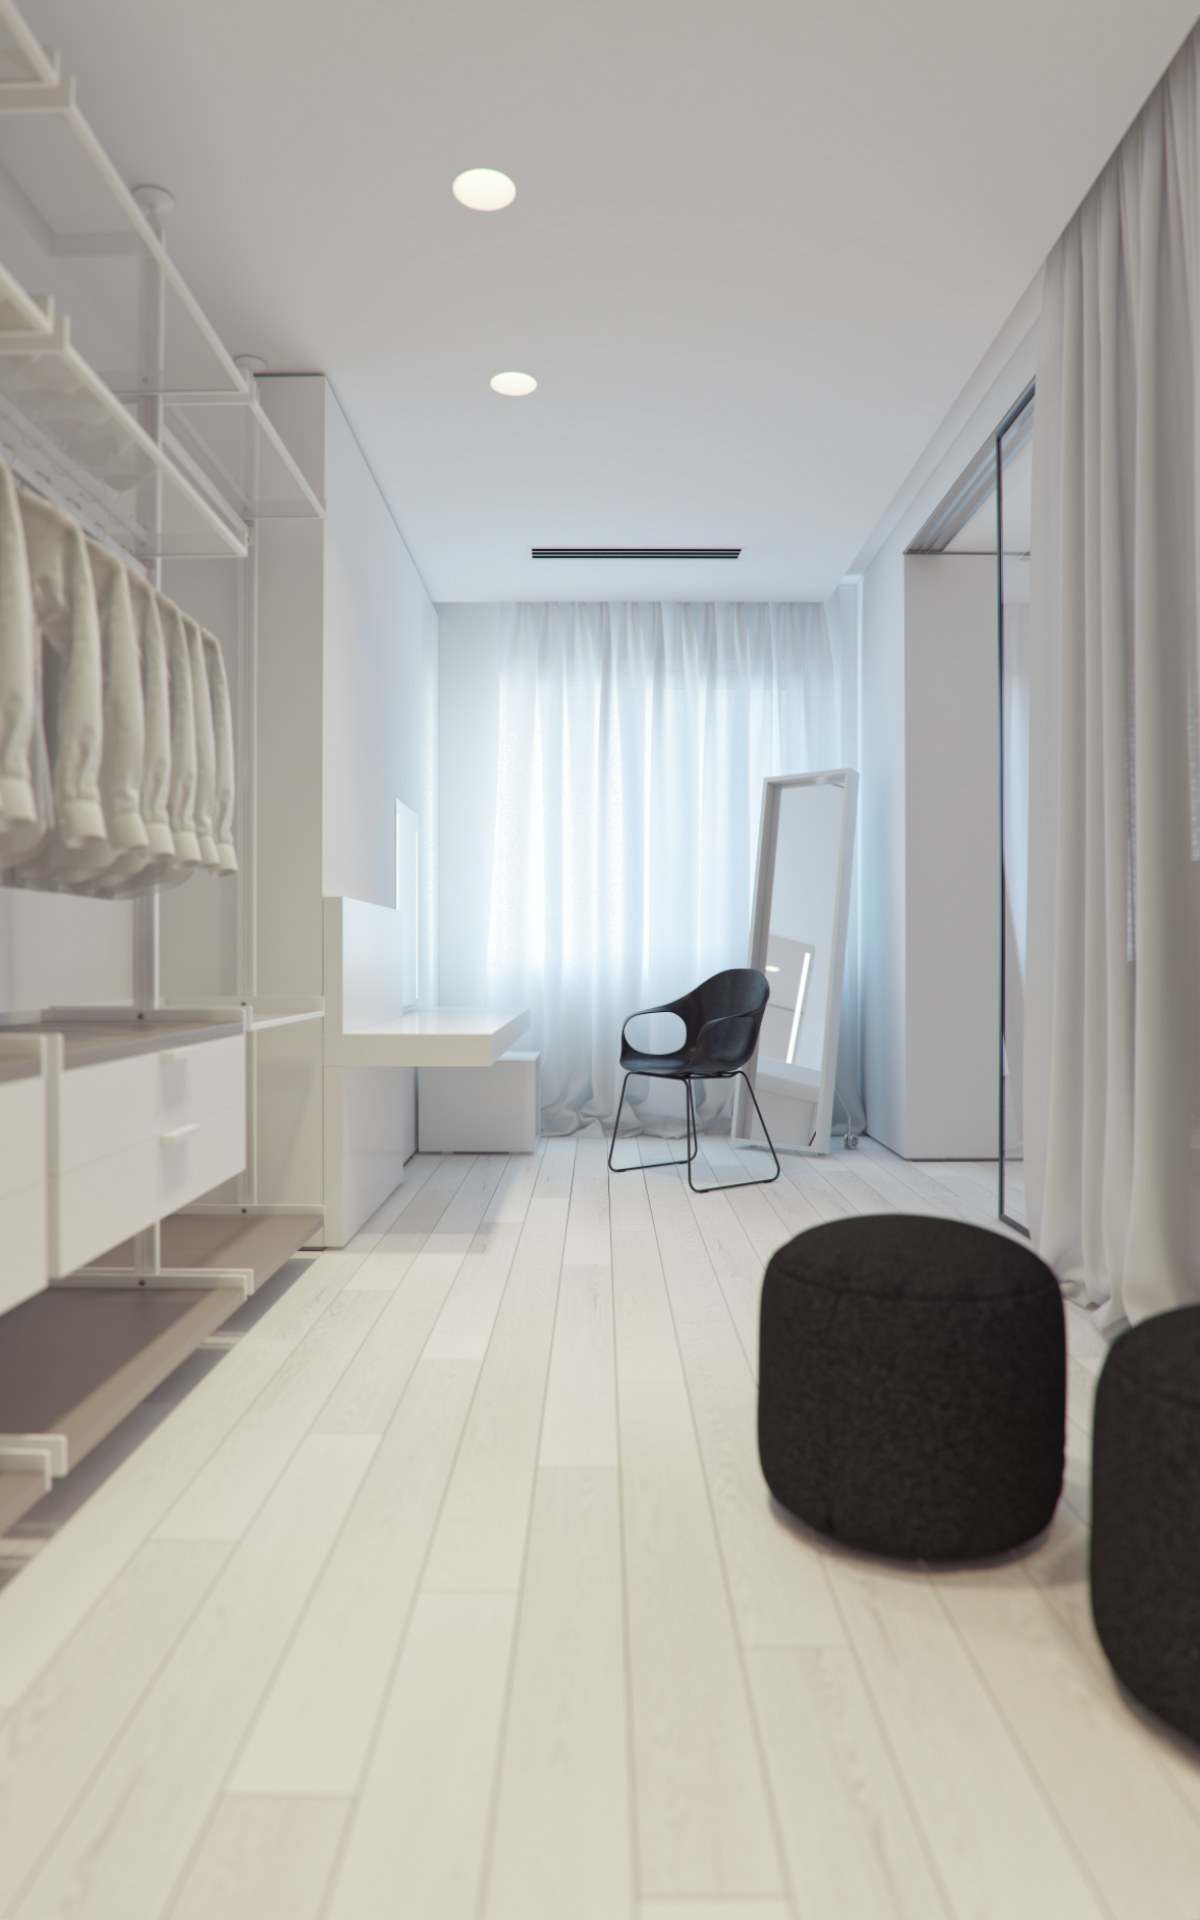 Dressig Room White - 3 white themed homes with striking modern minimalist aesthetics